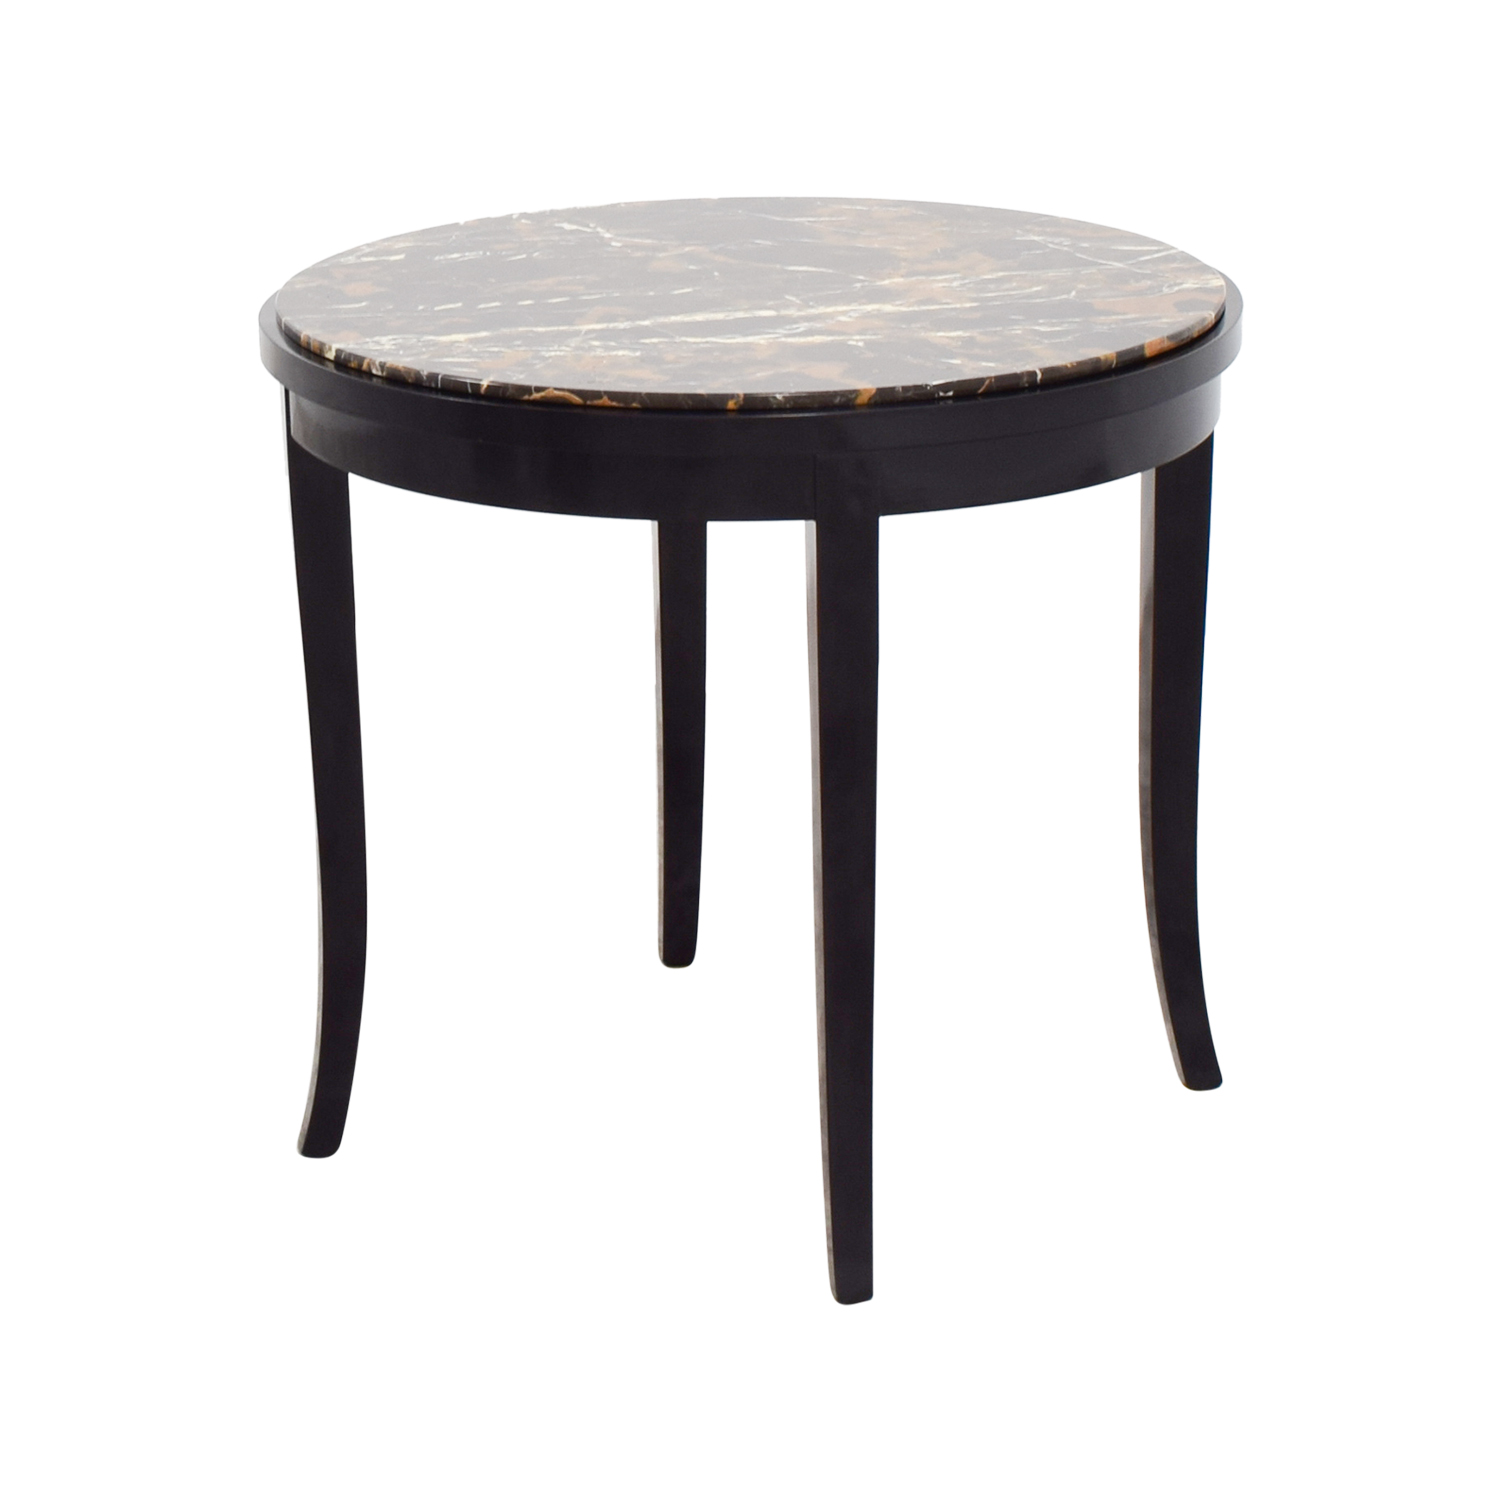 Marble Top Coffee Table: Marble Top Coffee Table / Tables